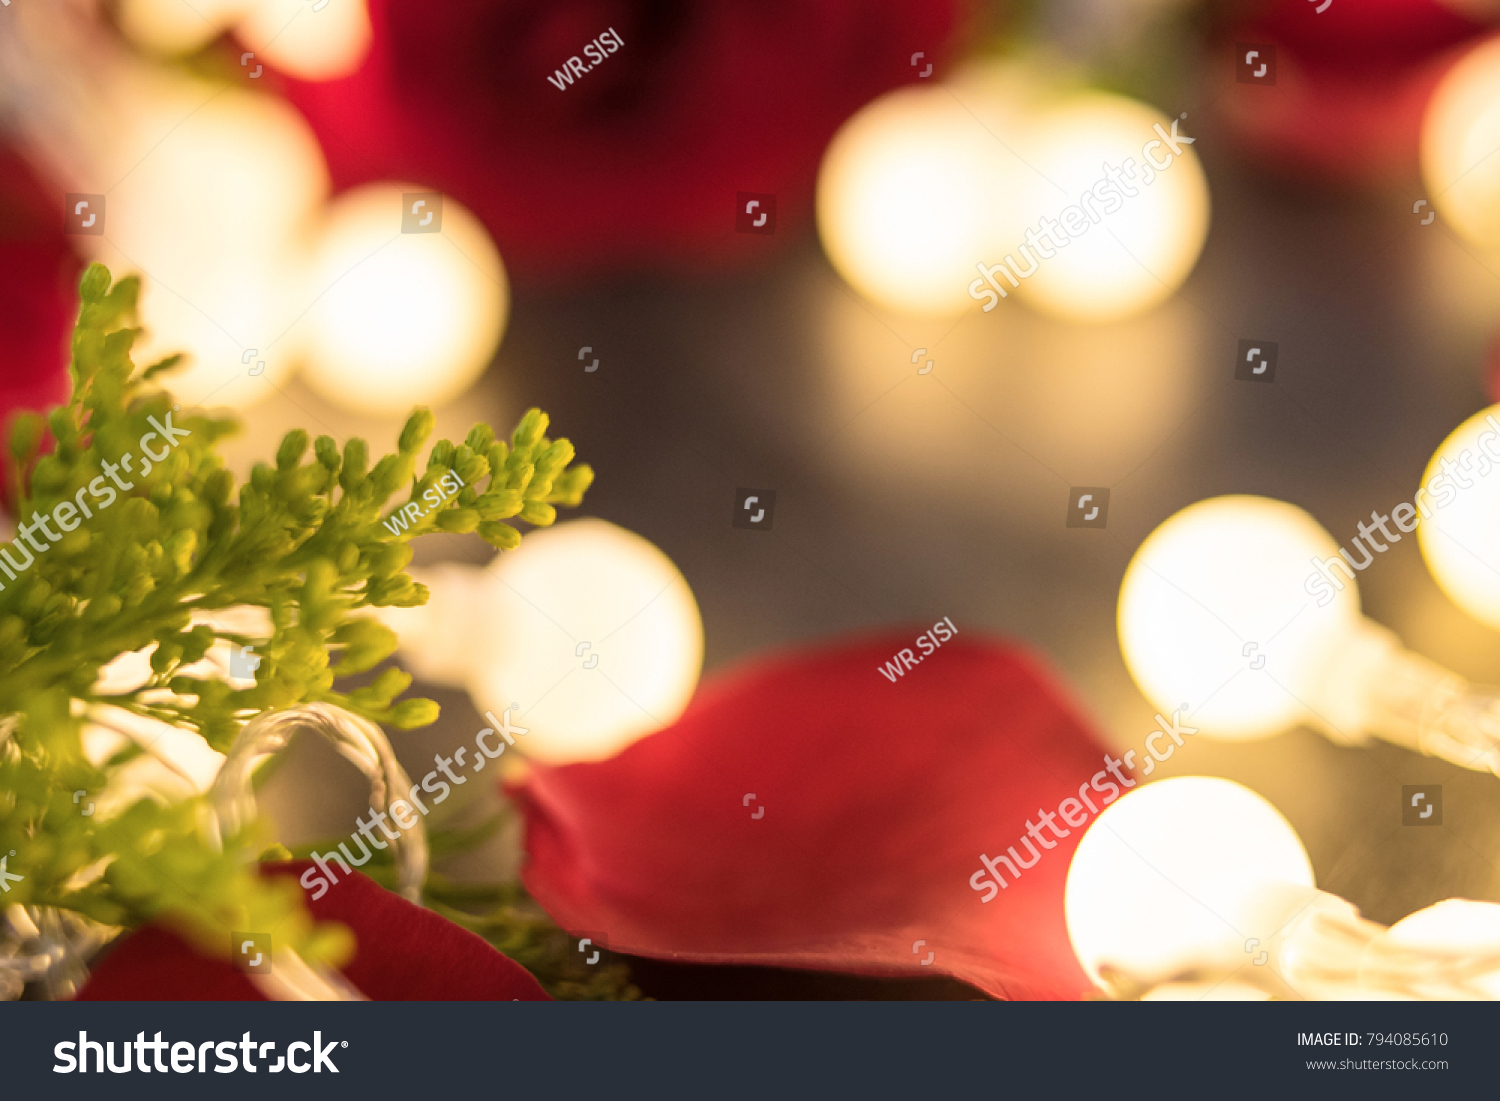 Fantasy Lights Rose Aesthetic Romantic Valentines Stock Photo Royalty Free 794085610